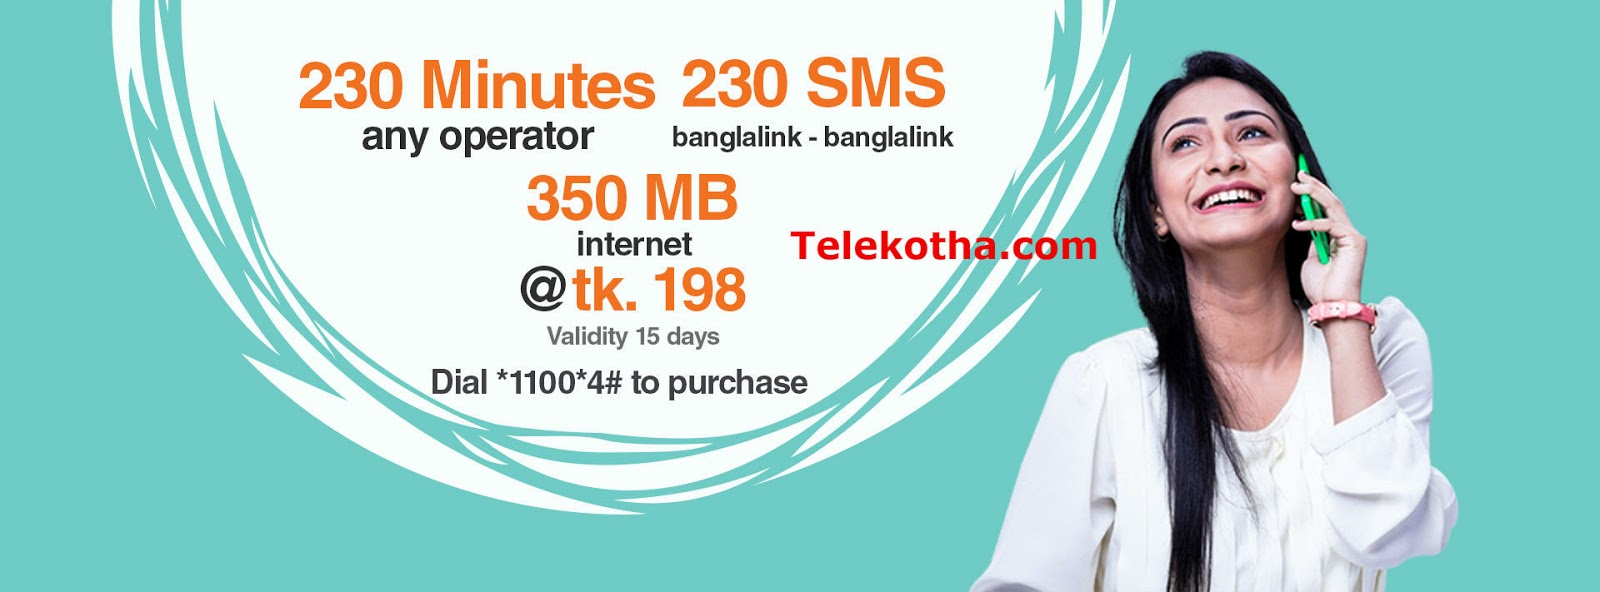 230 minutes (any operator), 350 MB and 230 SMS (banglalink-banglalink) for just Tk. 198. Dial *1100*4#